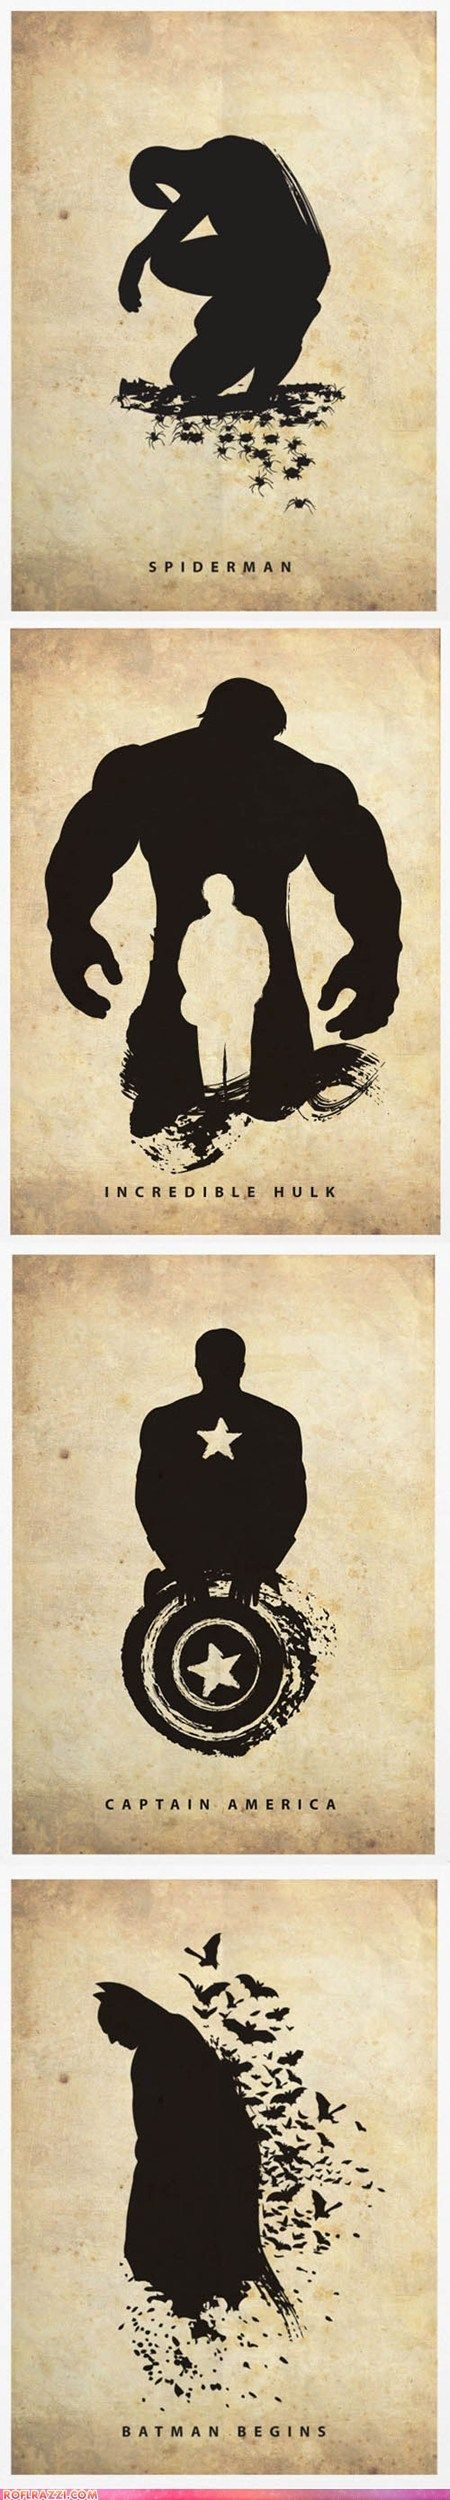 Marvel silhouettes